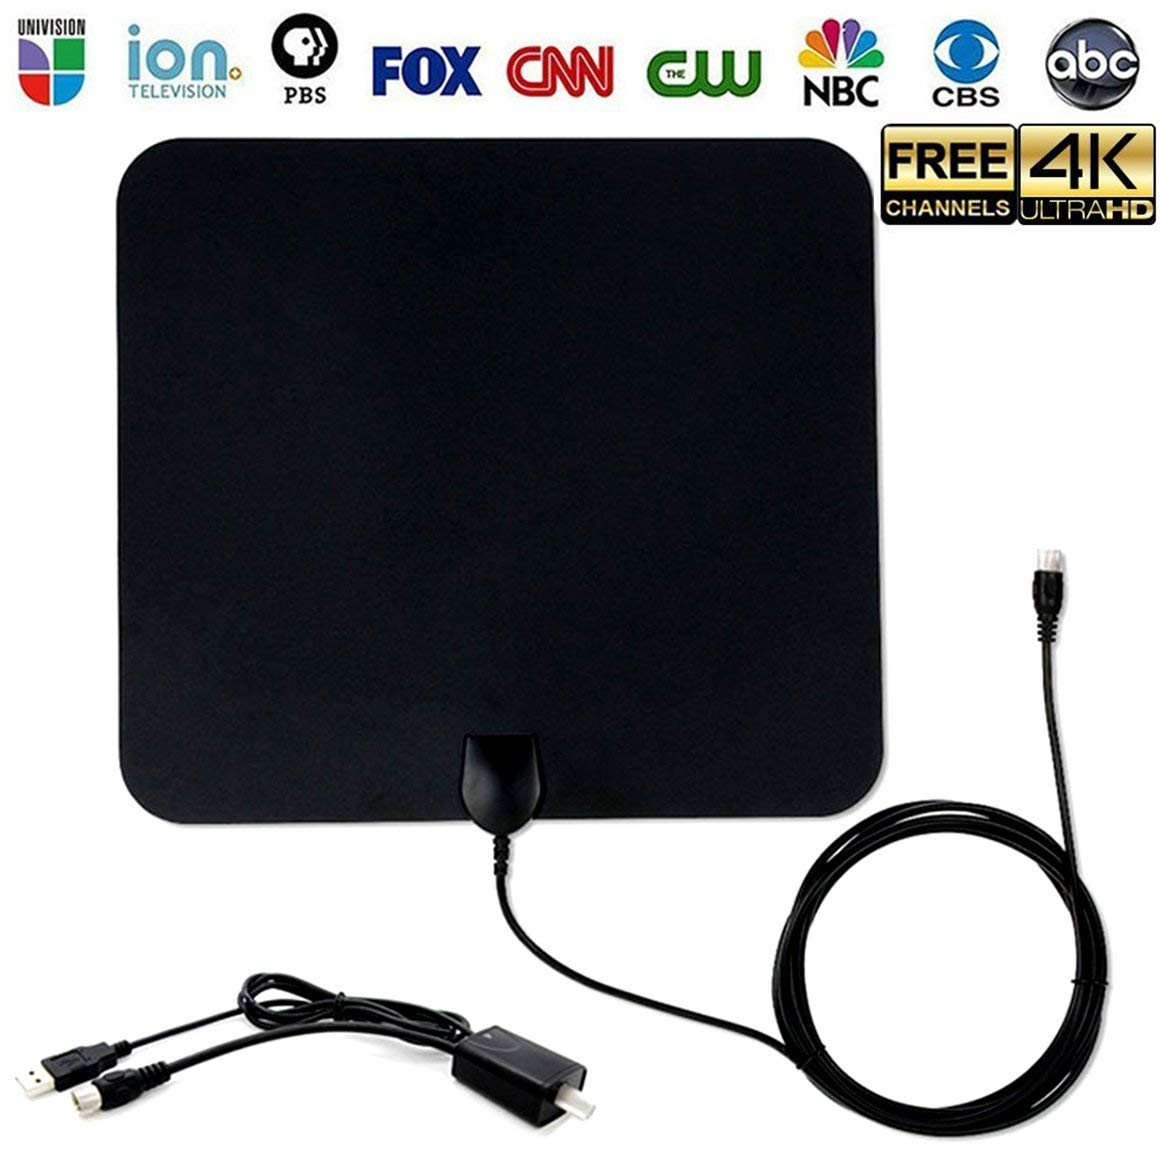 TV Antenna, HDTV Amplified Digital Antenna Super-Thin 50 Miles Range, 1080P/4K with Detachable Amplifier Signal Booster for Free TV Channels,USB Powered 13FT High Performance Coax Cable, Black